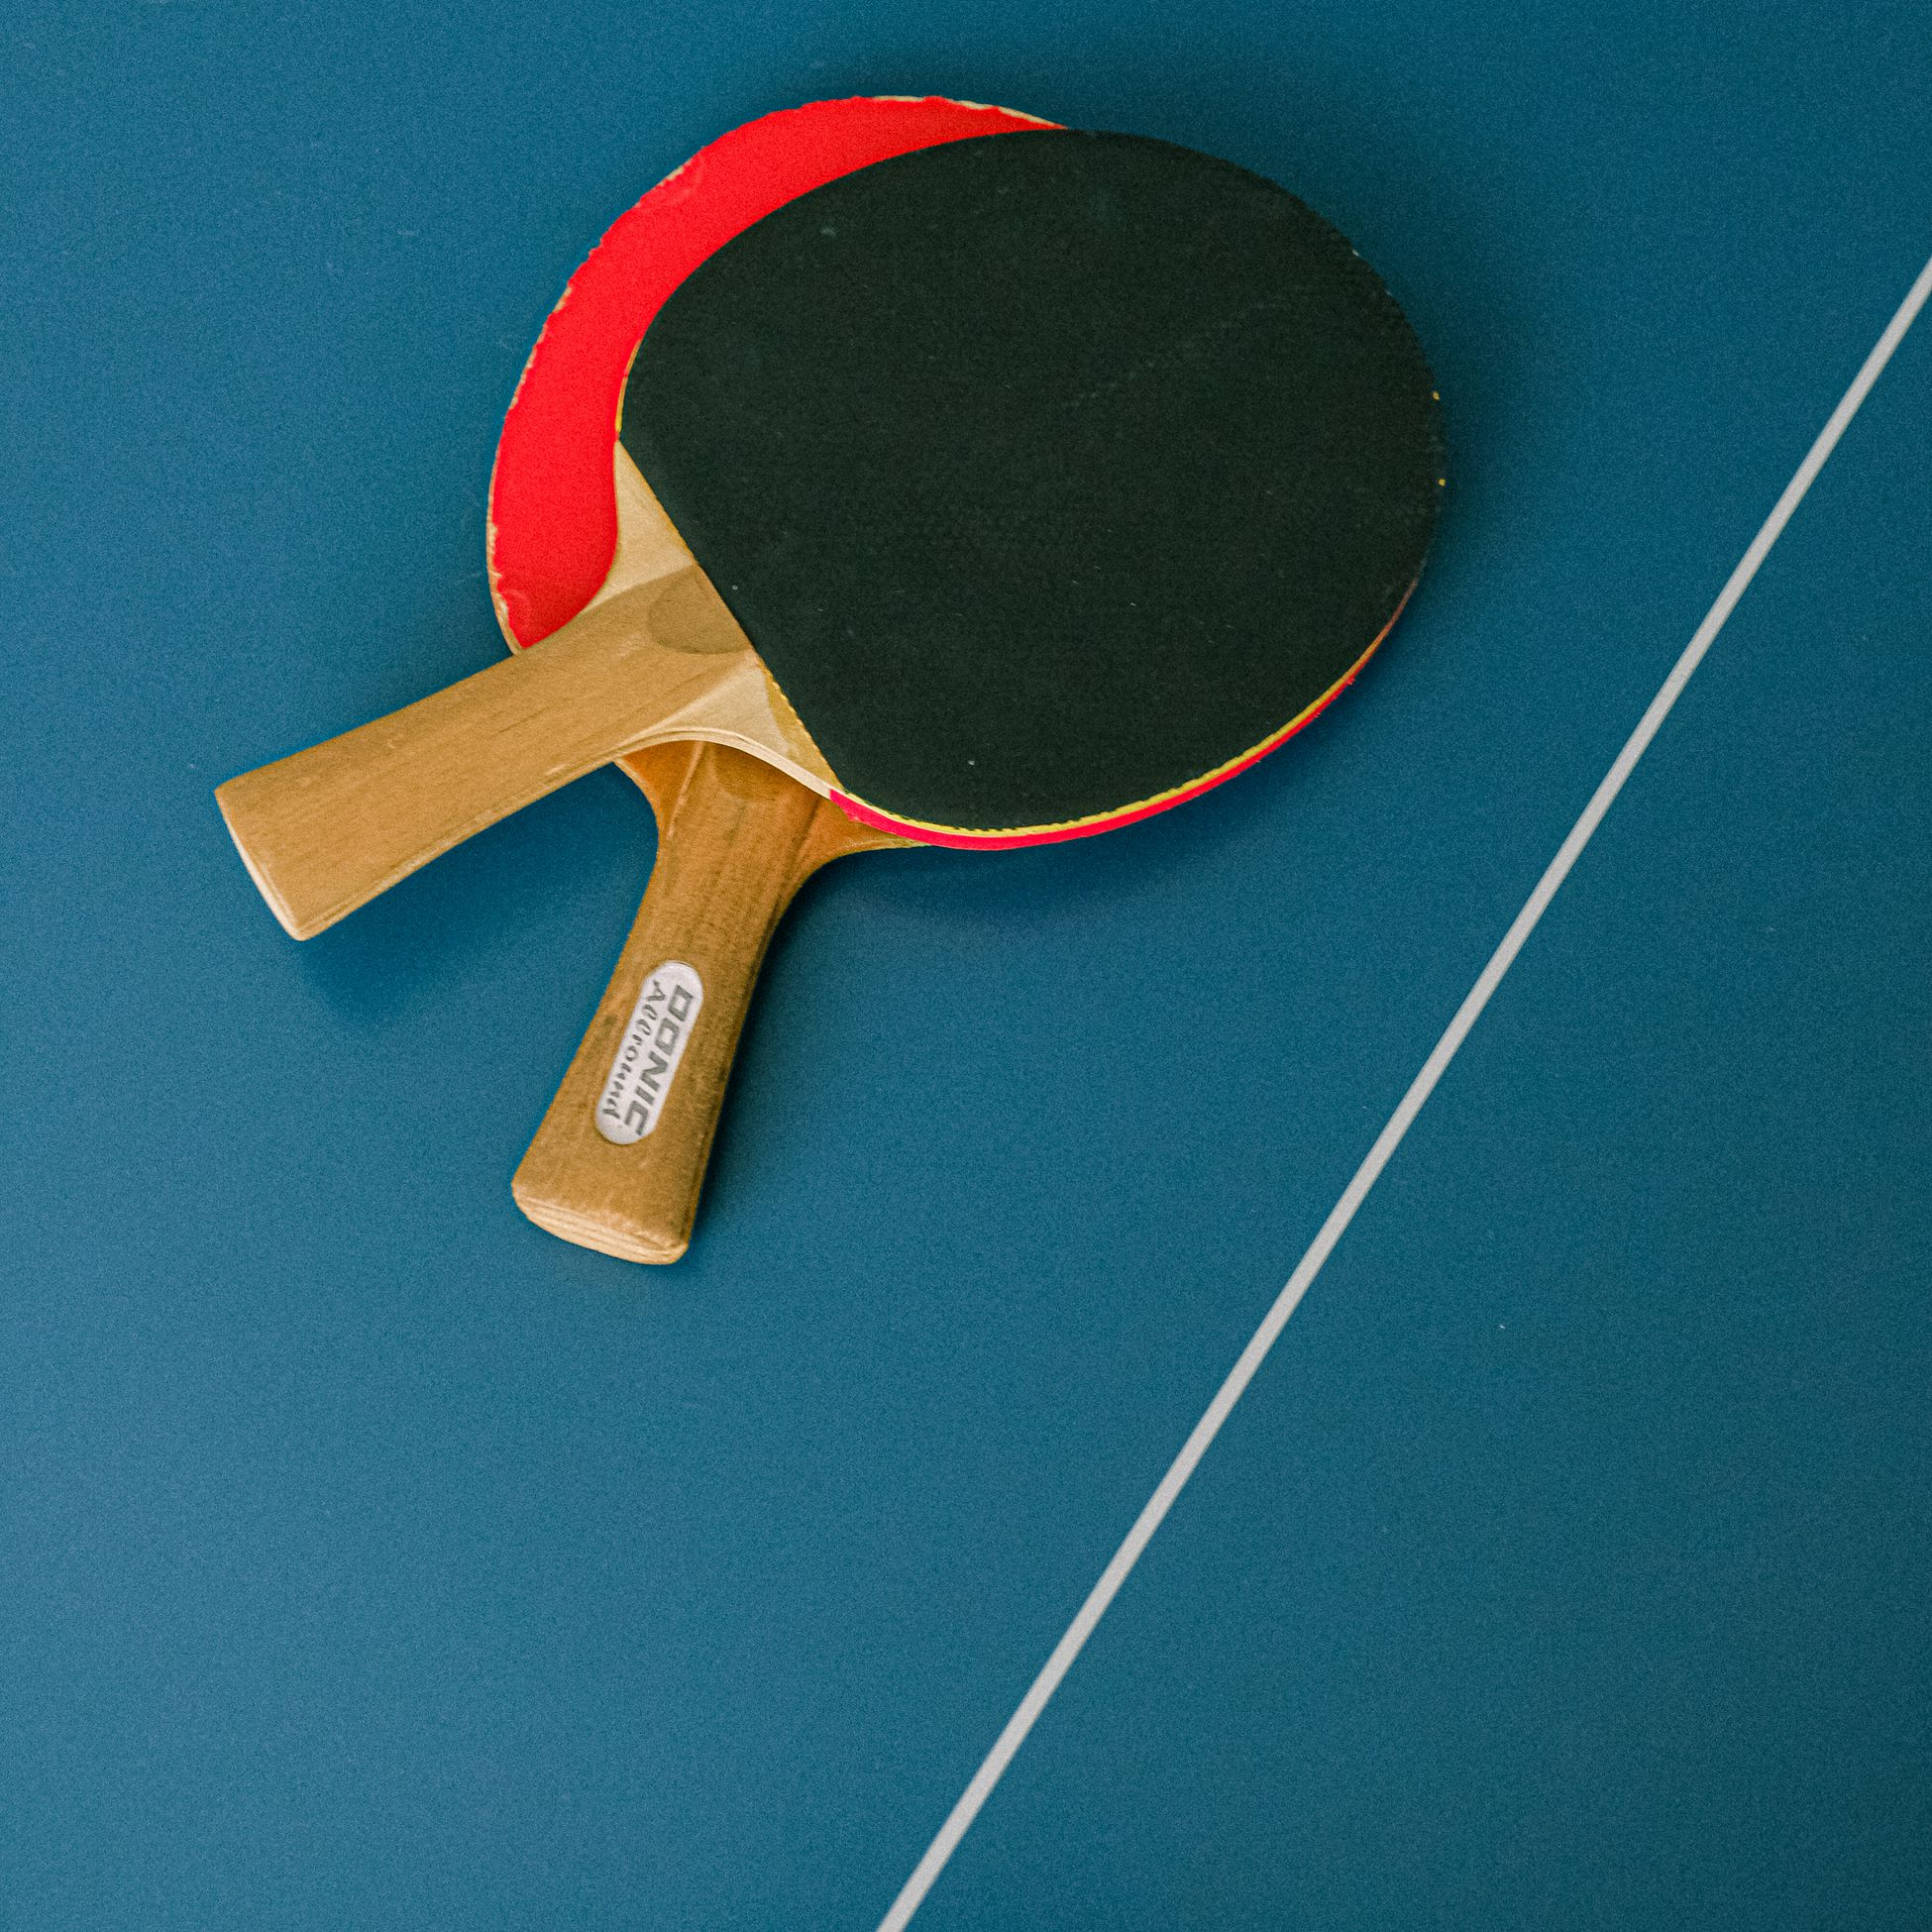 Round Ping Pong Table